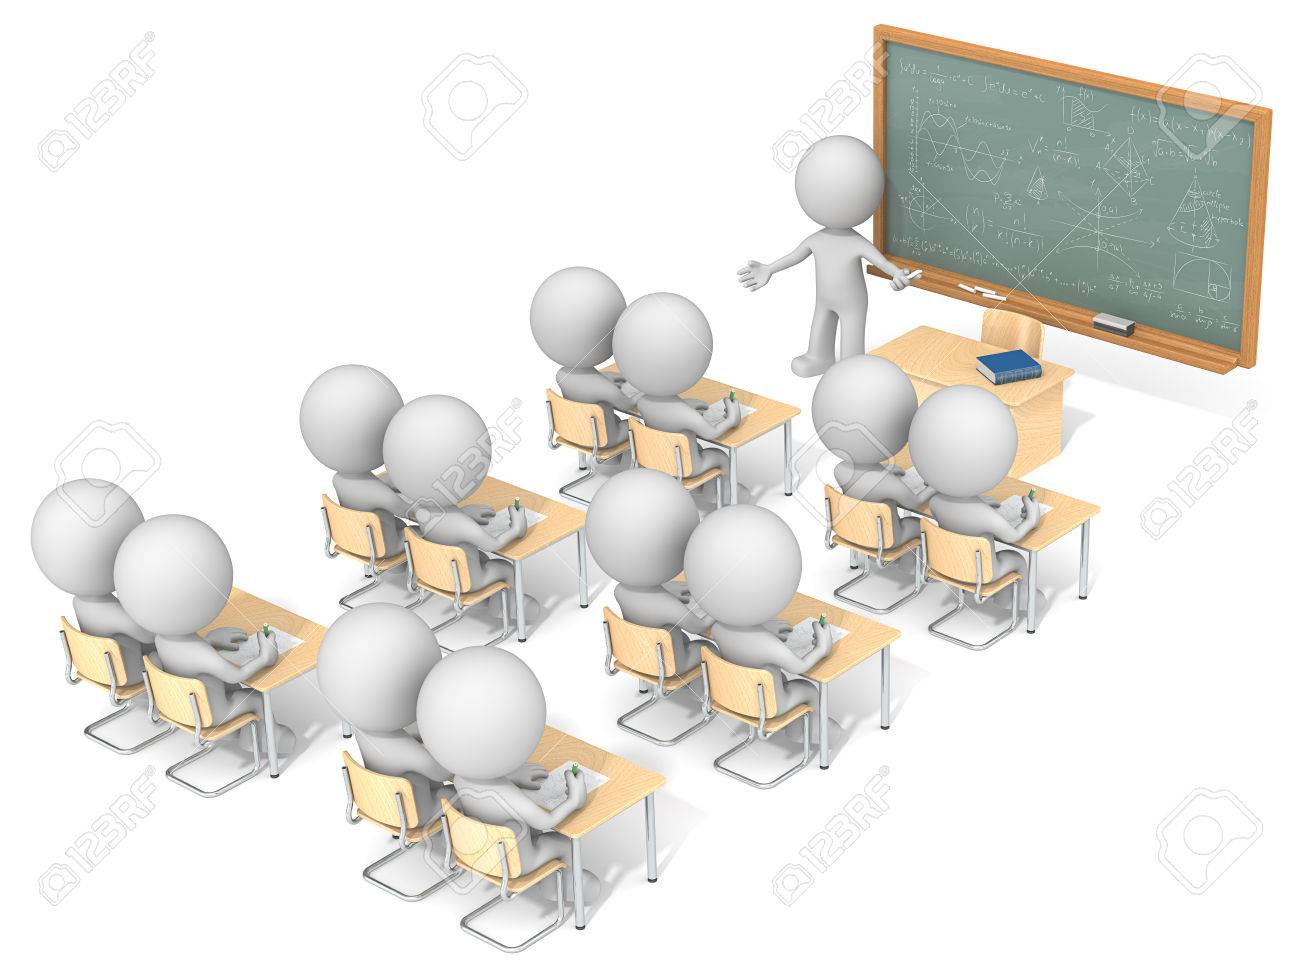 Classroom. Dude 3D characters X13 in classroom. Chalkboard with sample Mathematics. Top, side view. Standard-Bild - 43843549